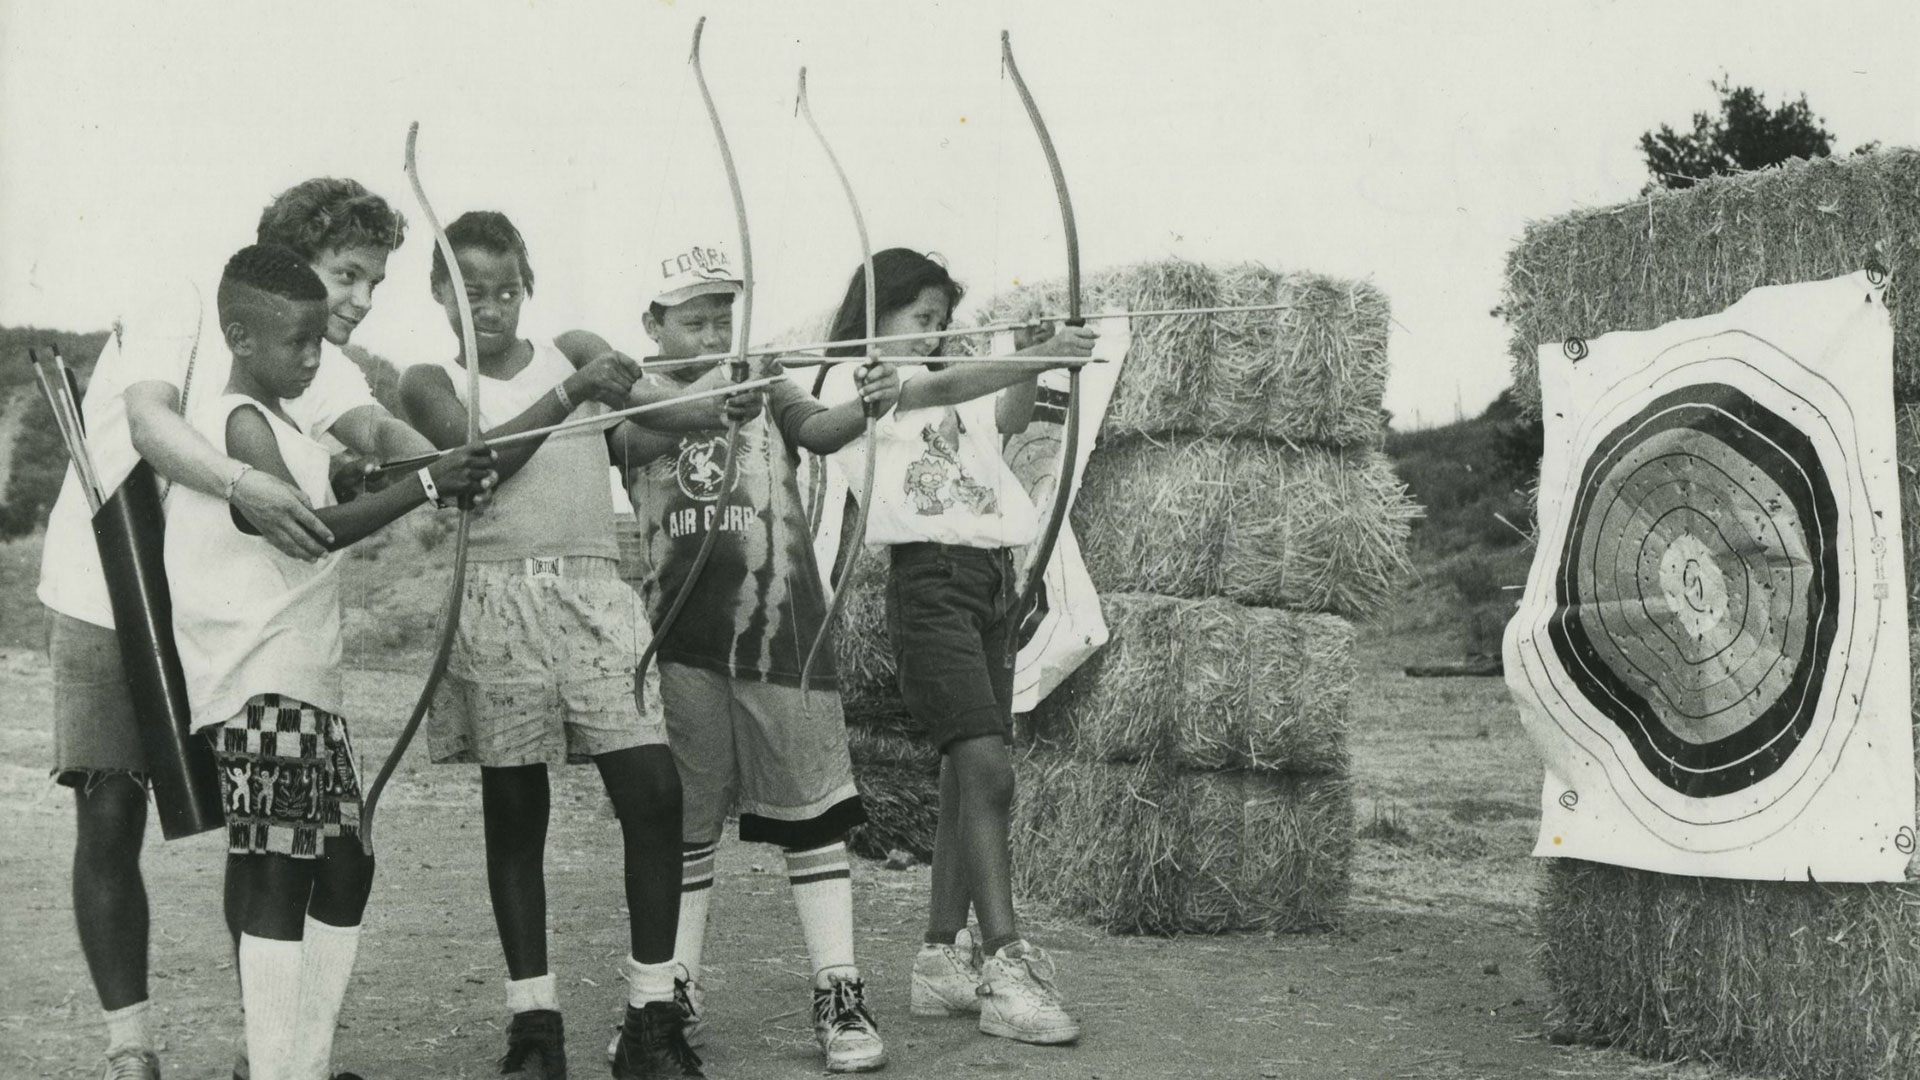 Woodcraft Rangers campers participating in the 1970's